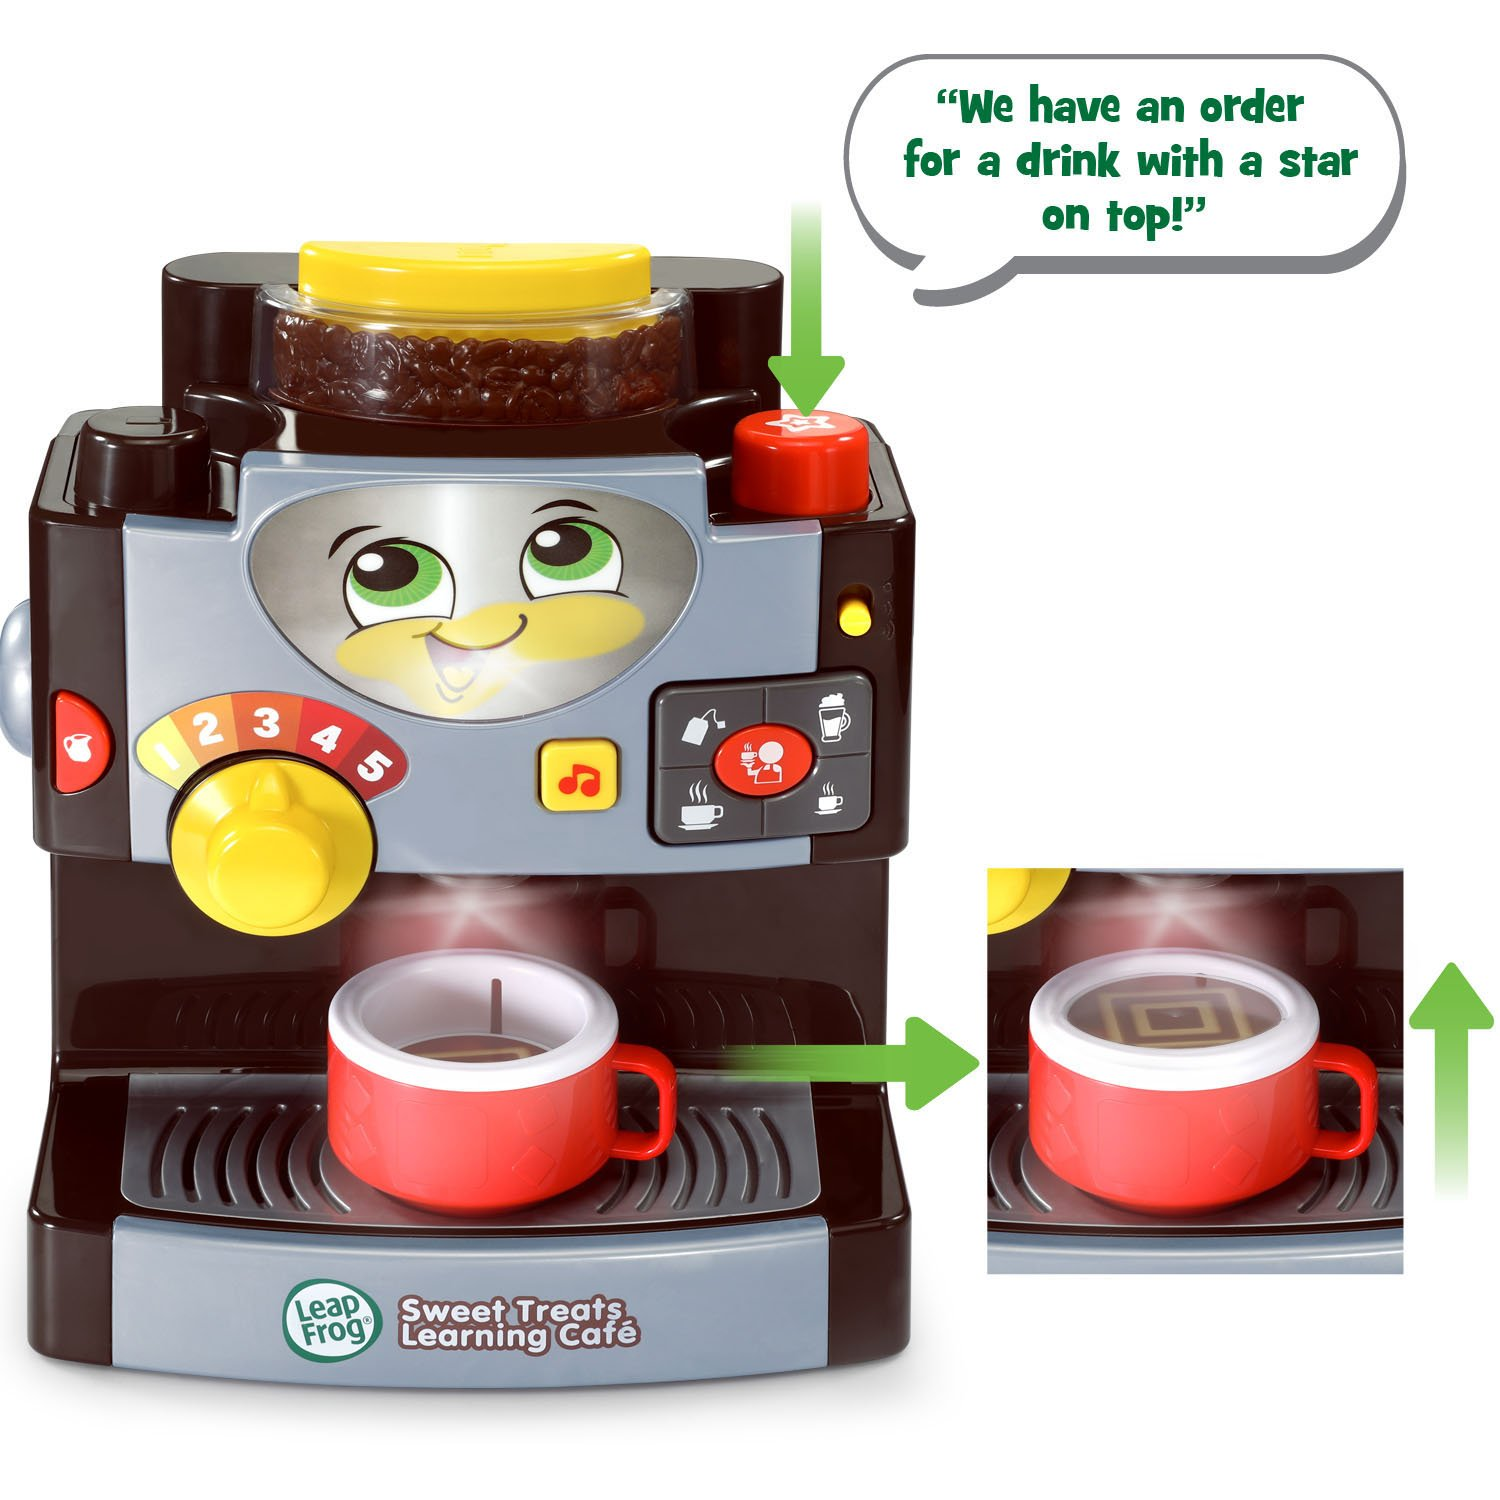 LeapFrog Sweet Treats Learning Café Amazon Exclusive, Black by LeapFrog (Image #3)